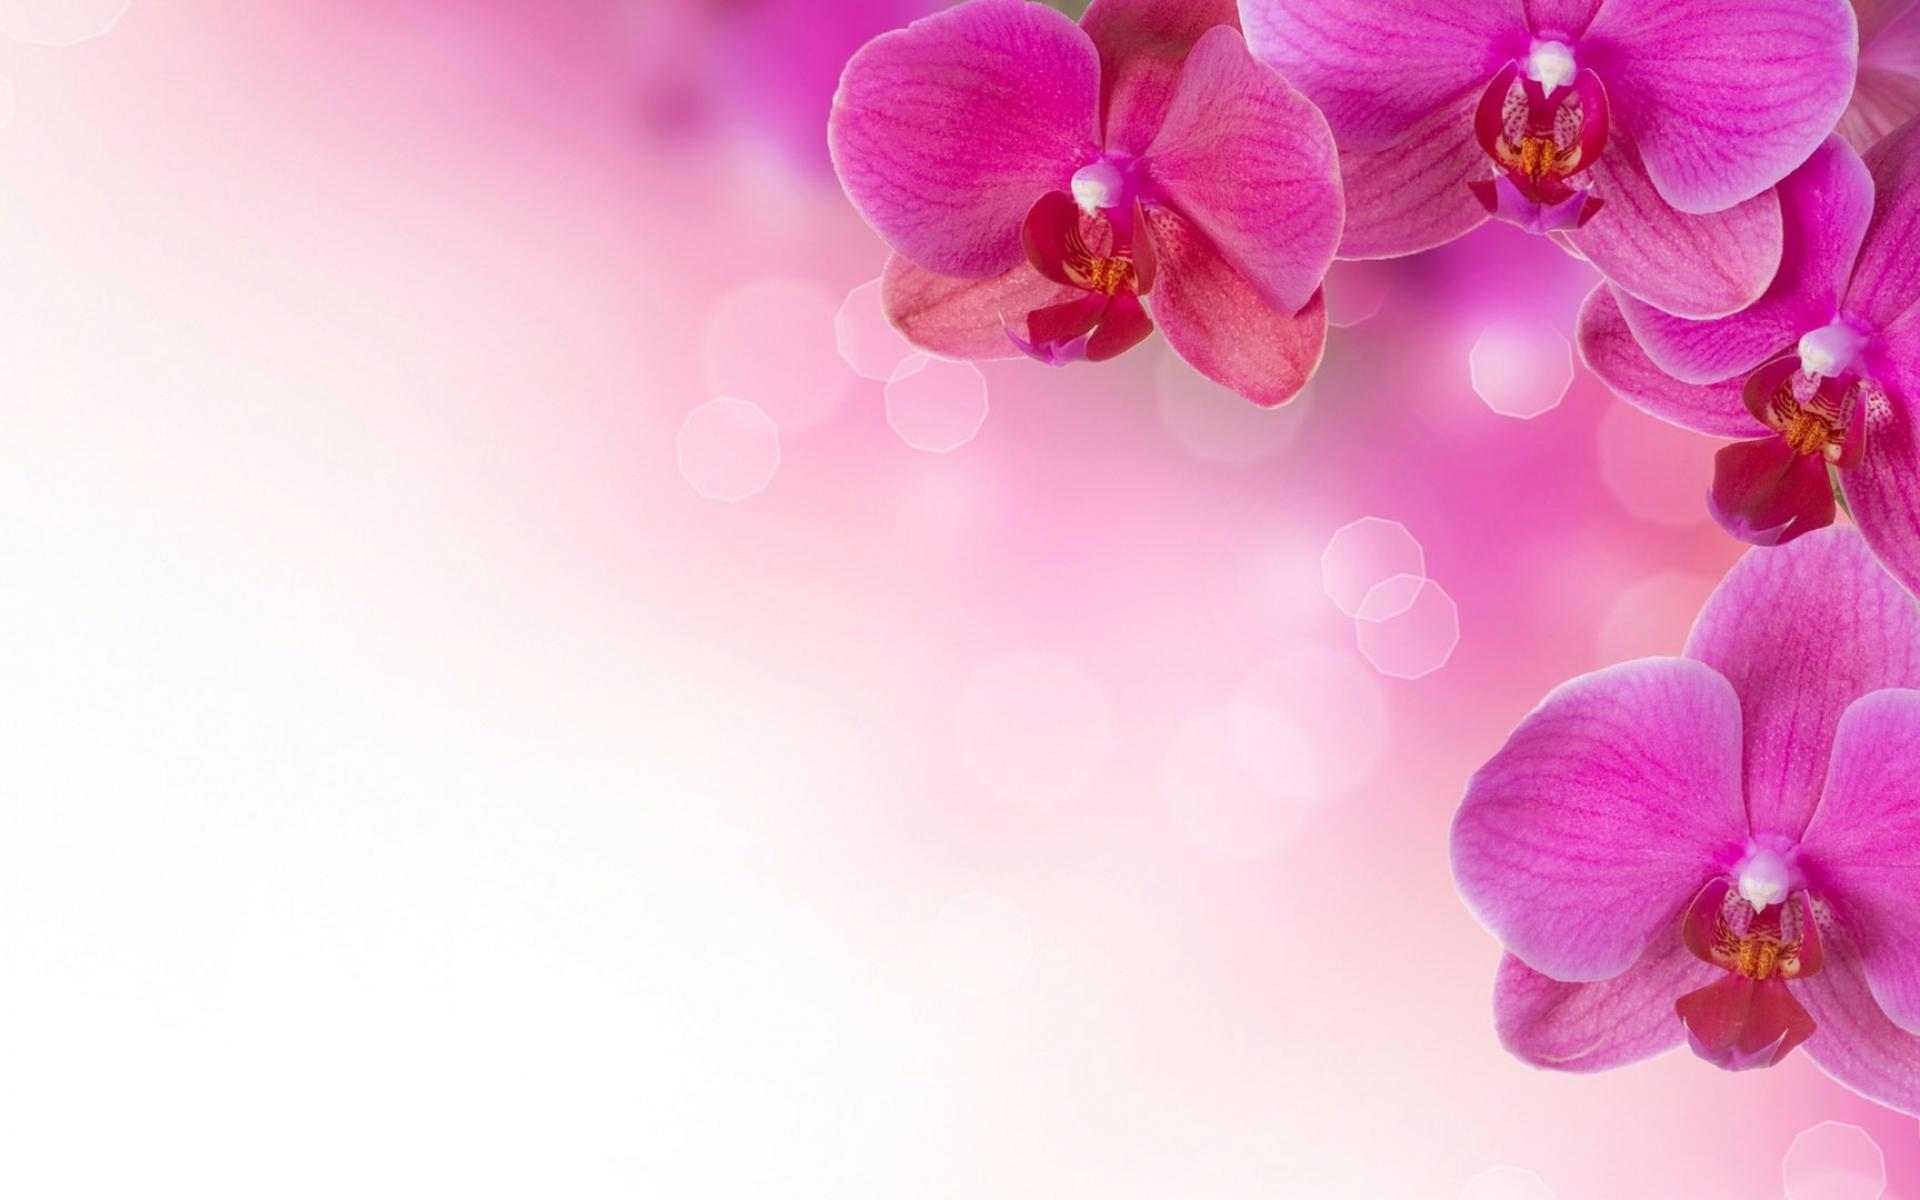 Pink Flower Wallpaper Backgrounds Wallpaper Cave